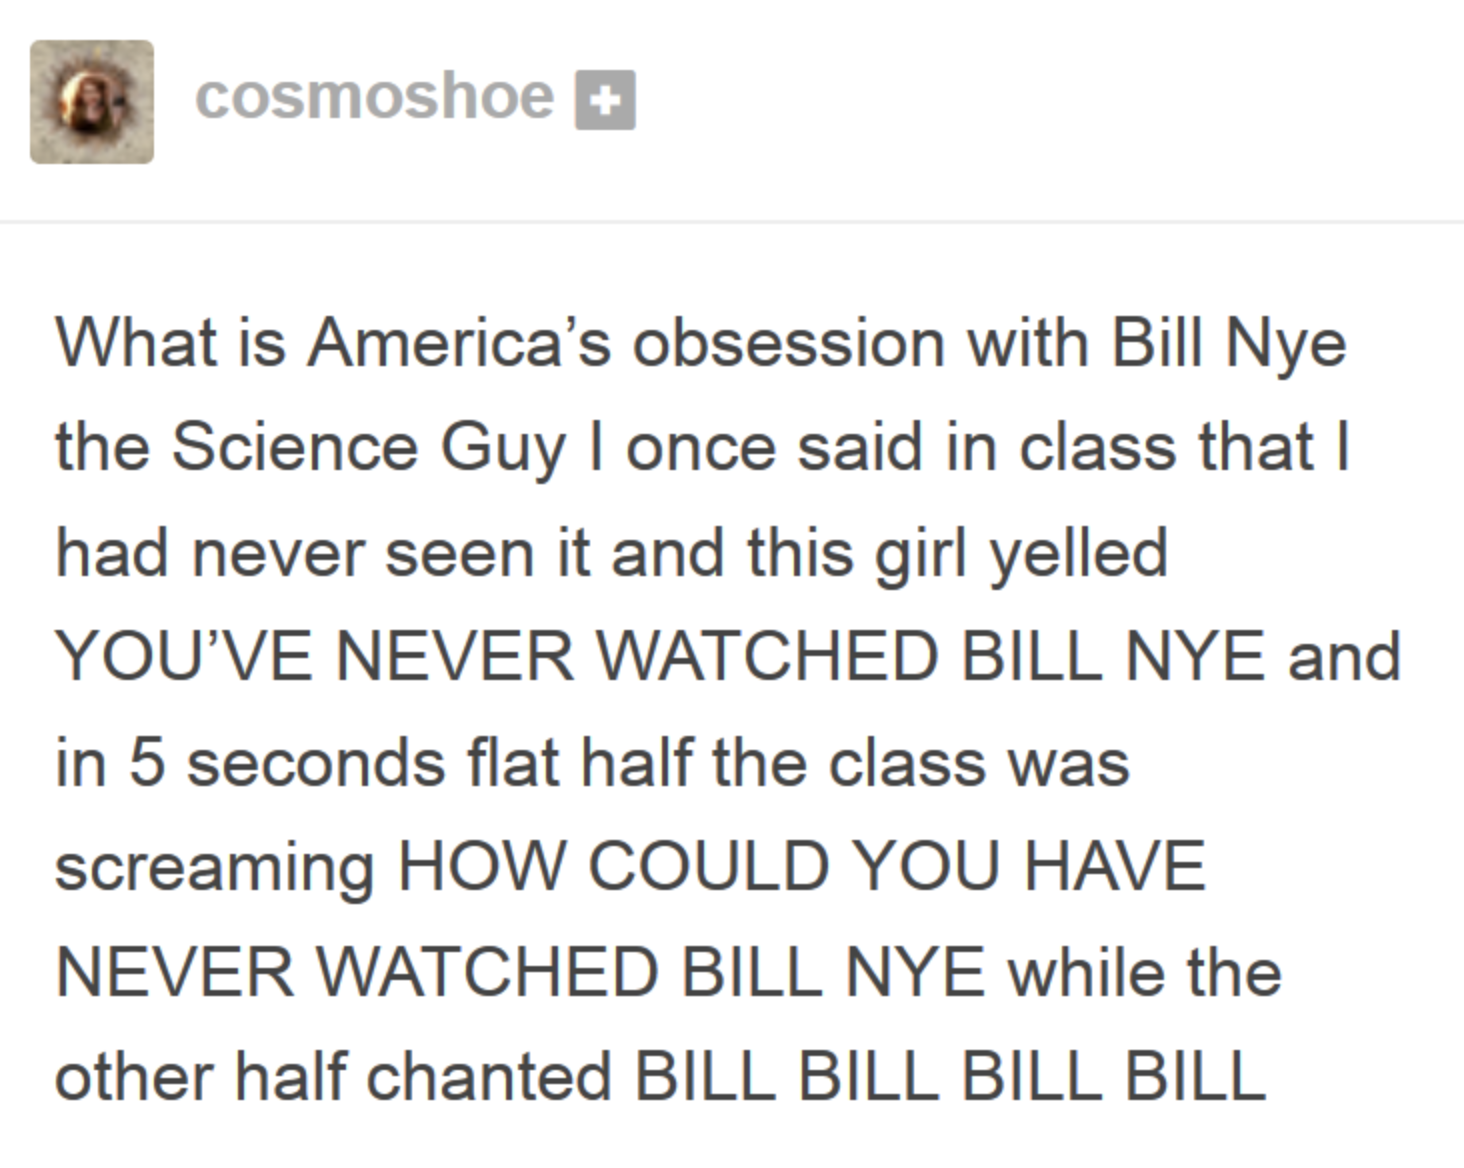 tumblr post about obsessing over bill nye